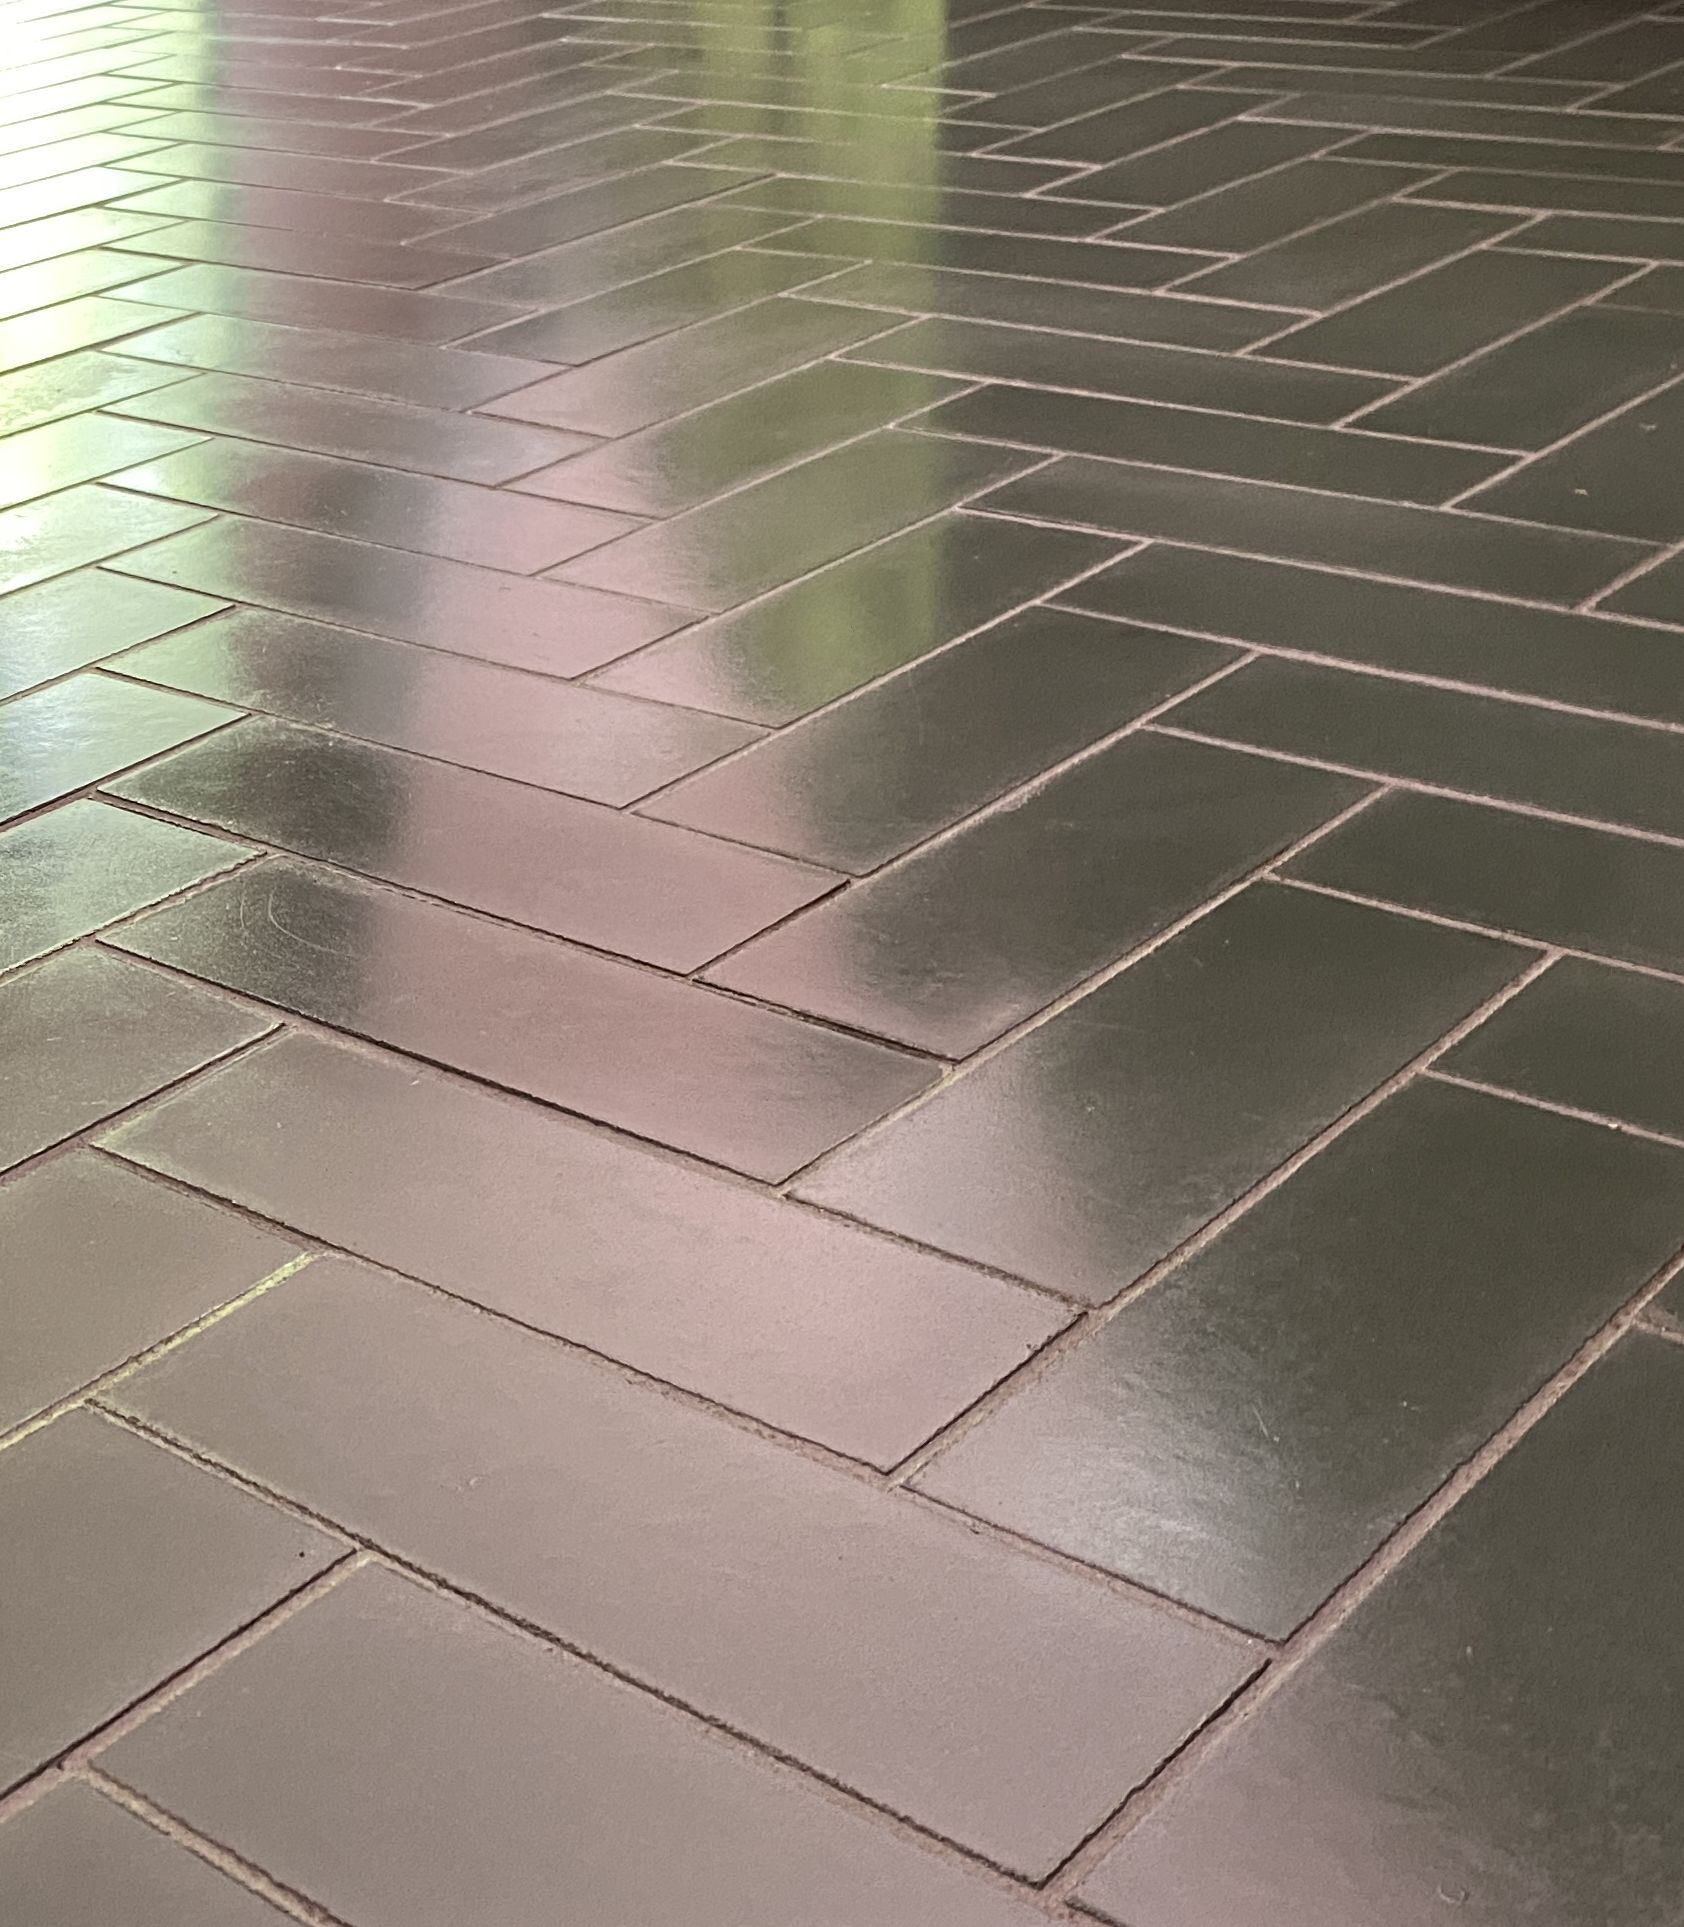 Encaustic tiles that have recently been cleaned by professional tile cleaning company